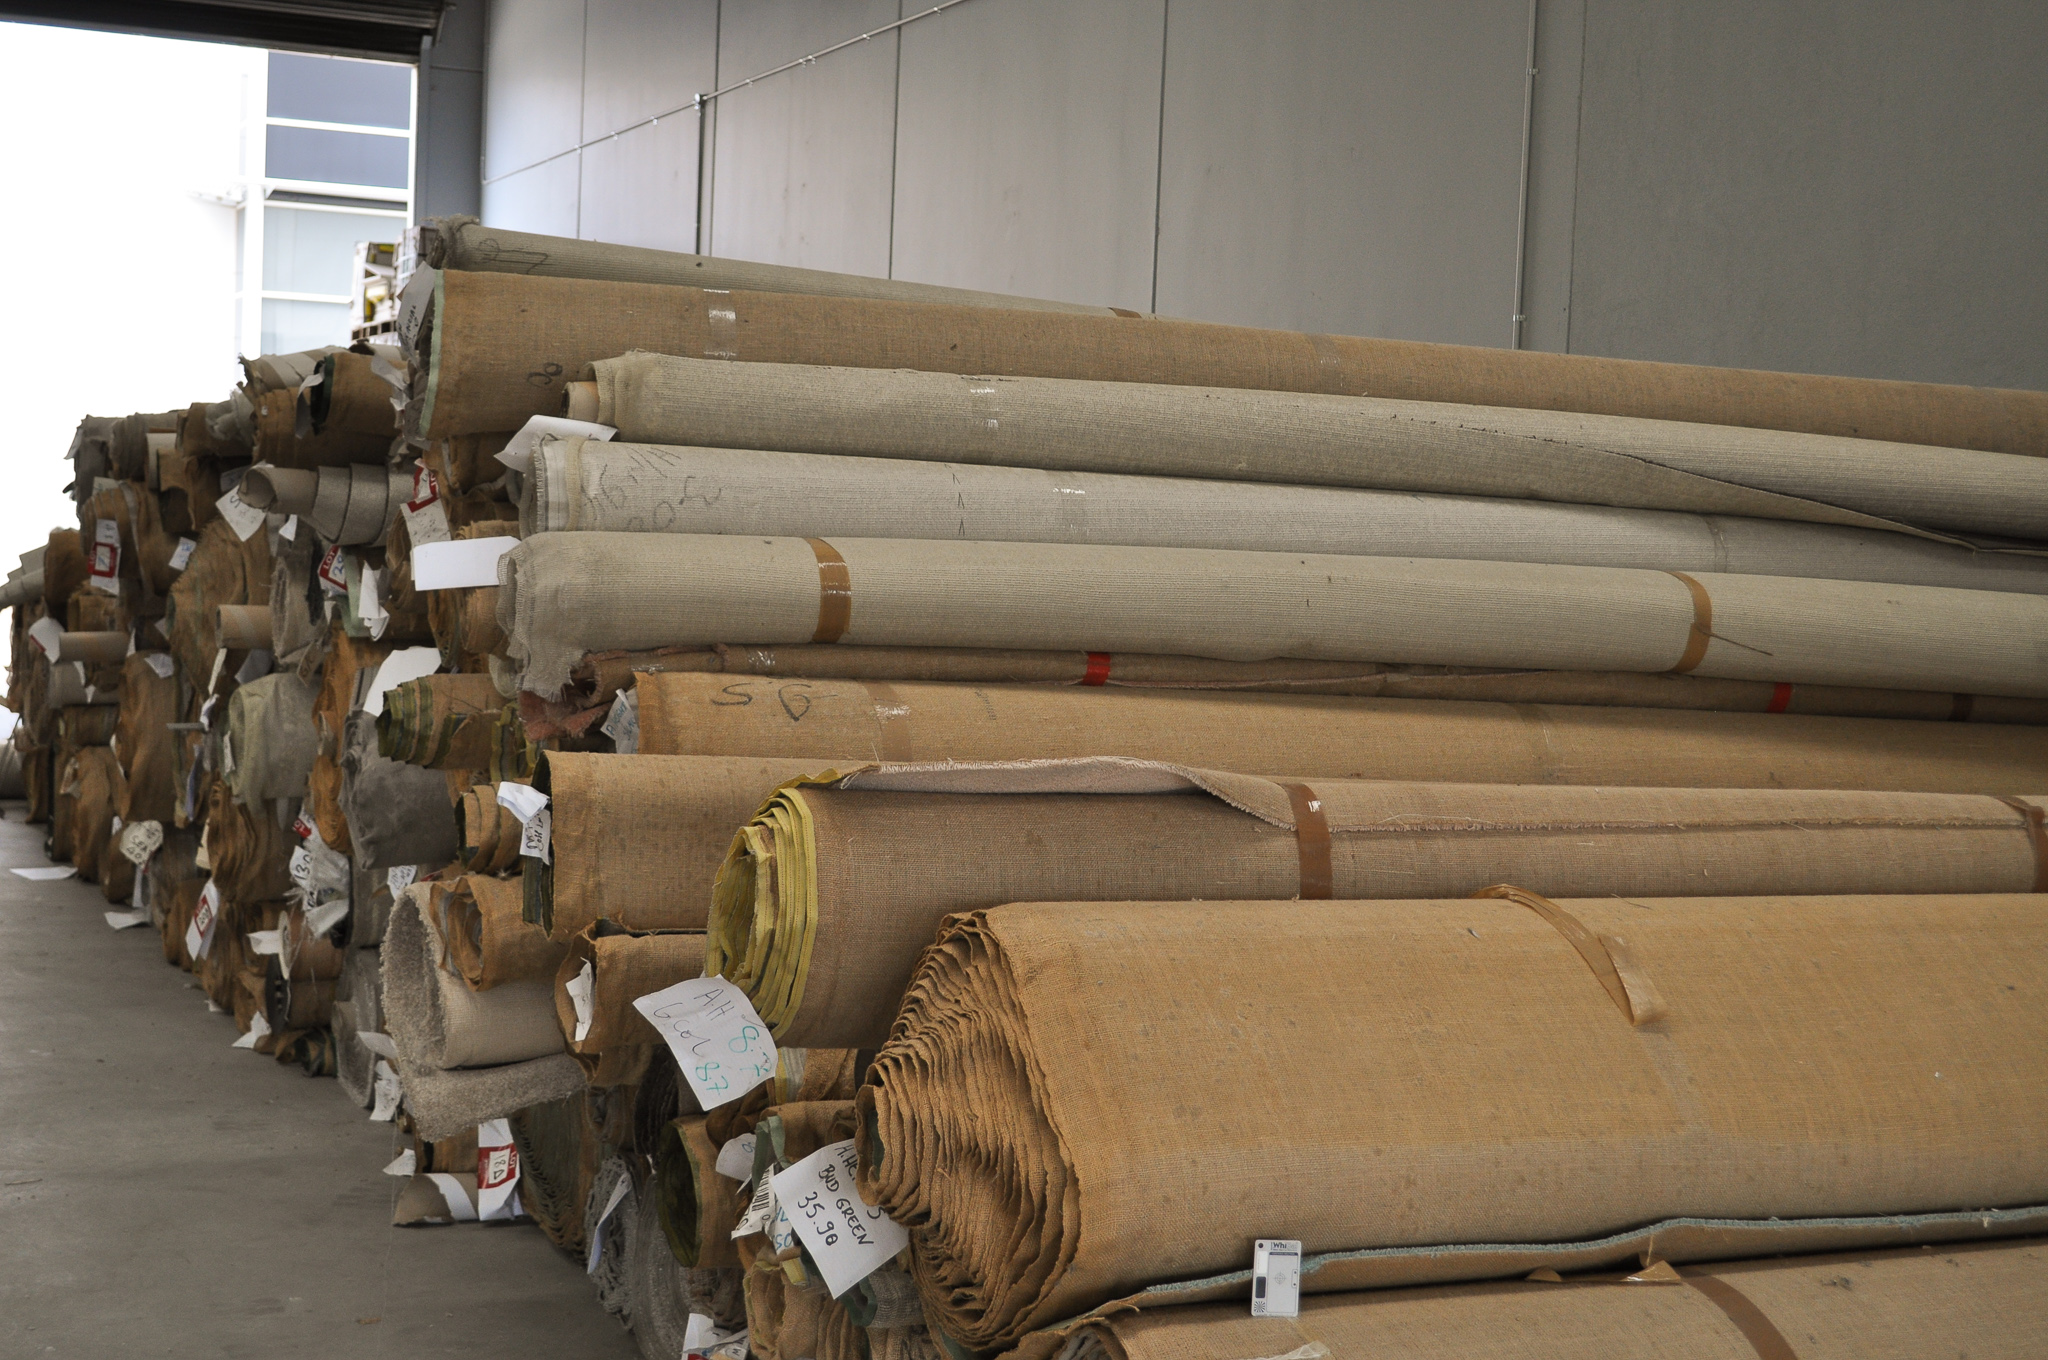 rolls of carpet in the warehouse of Concord Floors, they being carpet stock of Concord Floors.